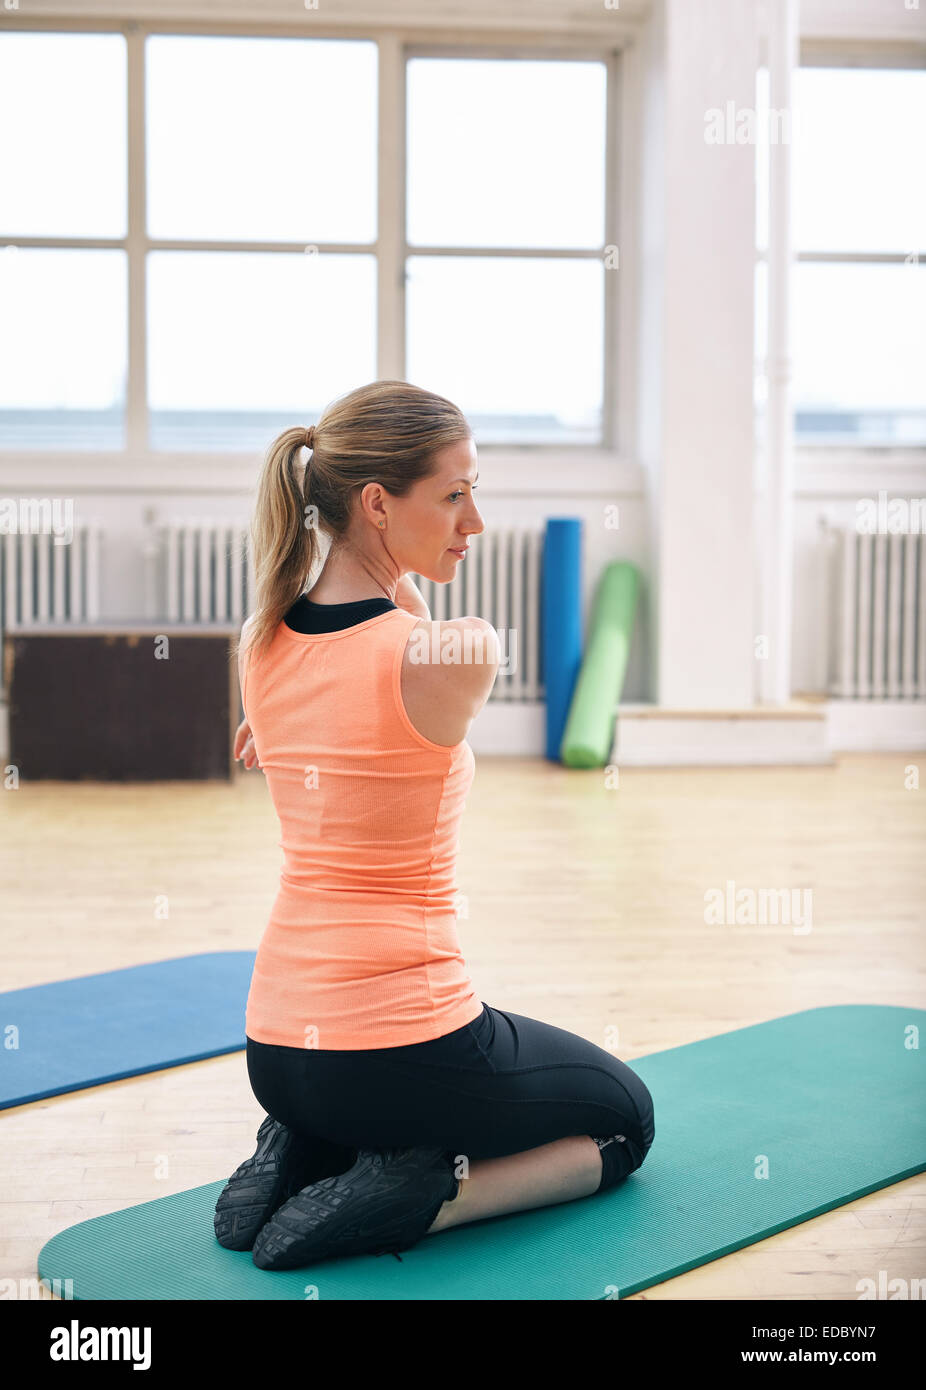 Woman sitting on fitness mat doing stretching exercises at gym. Fit Caucasian woman working out at health club. - Stock Image